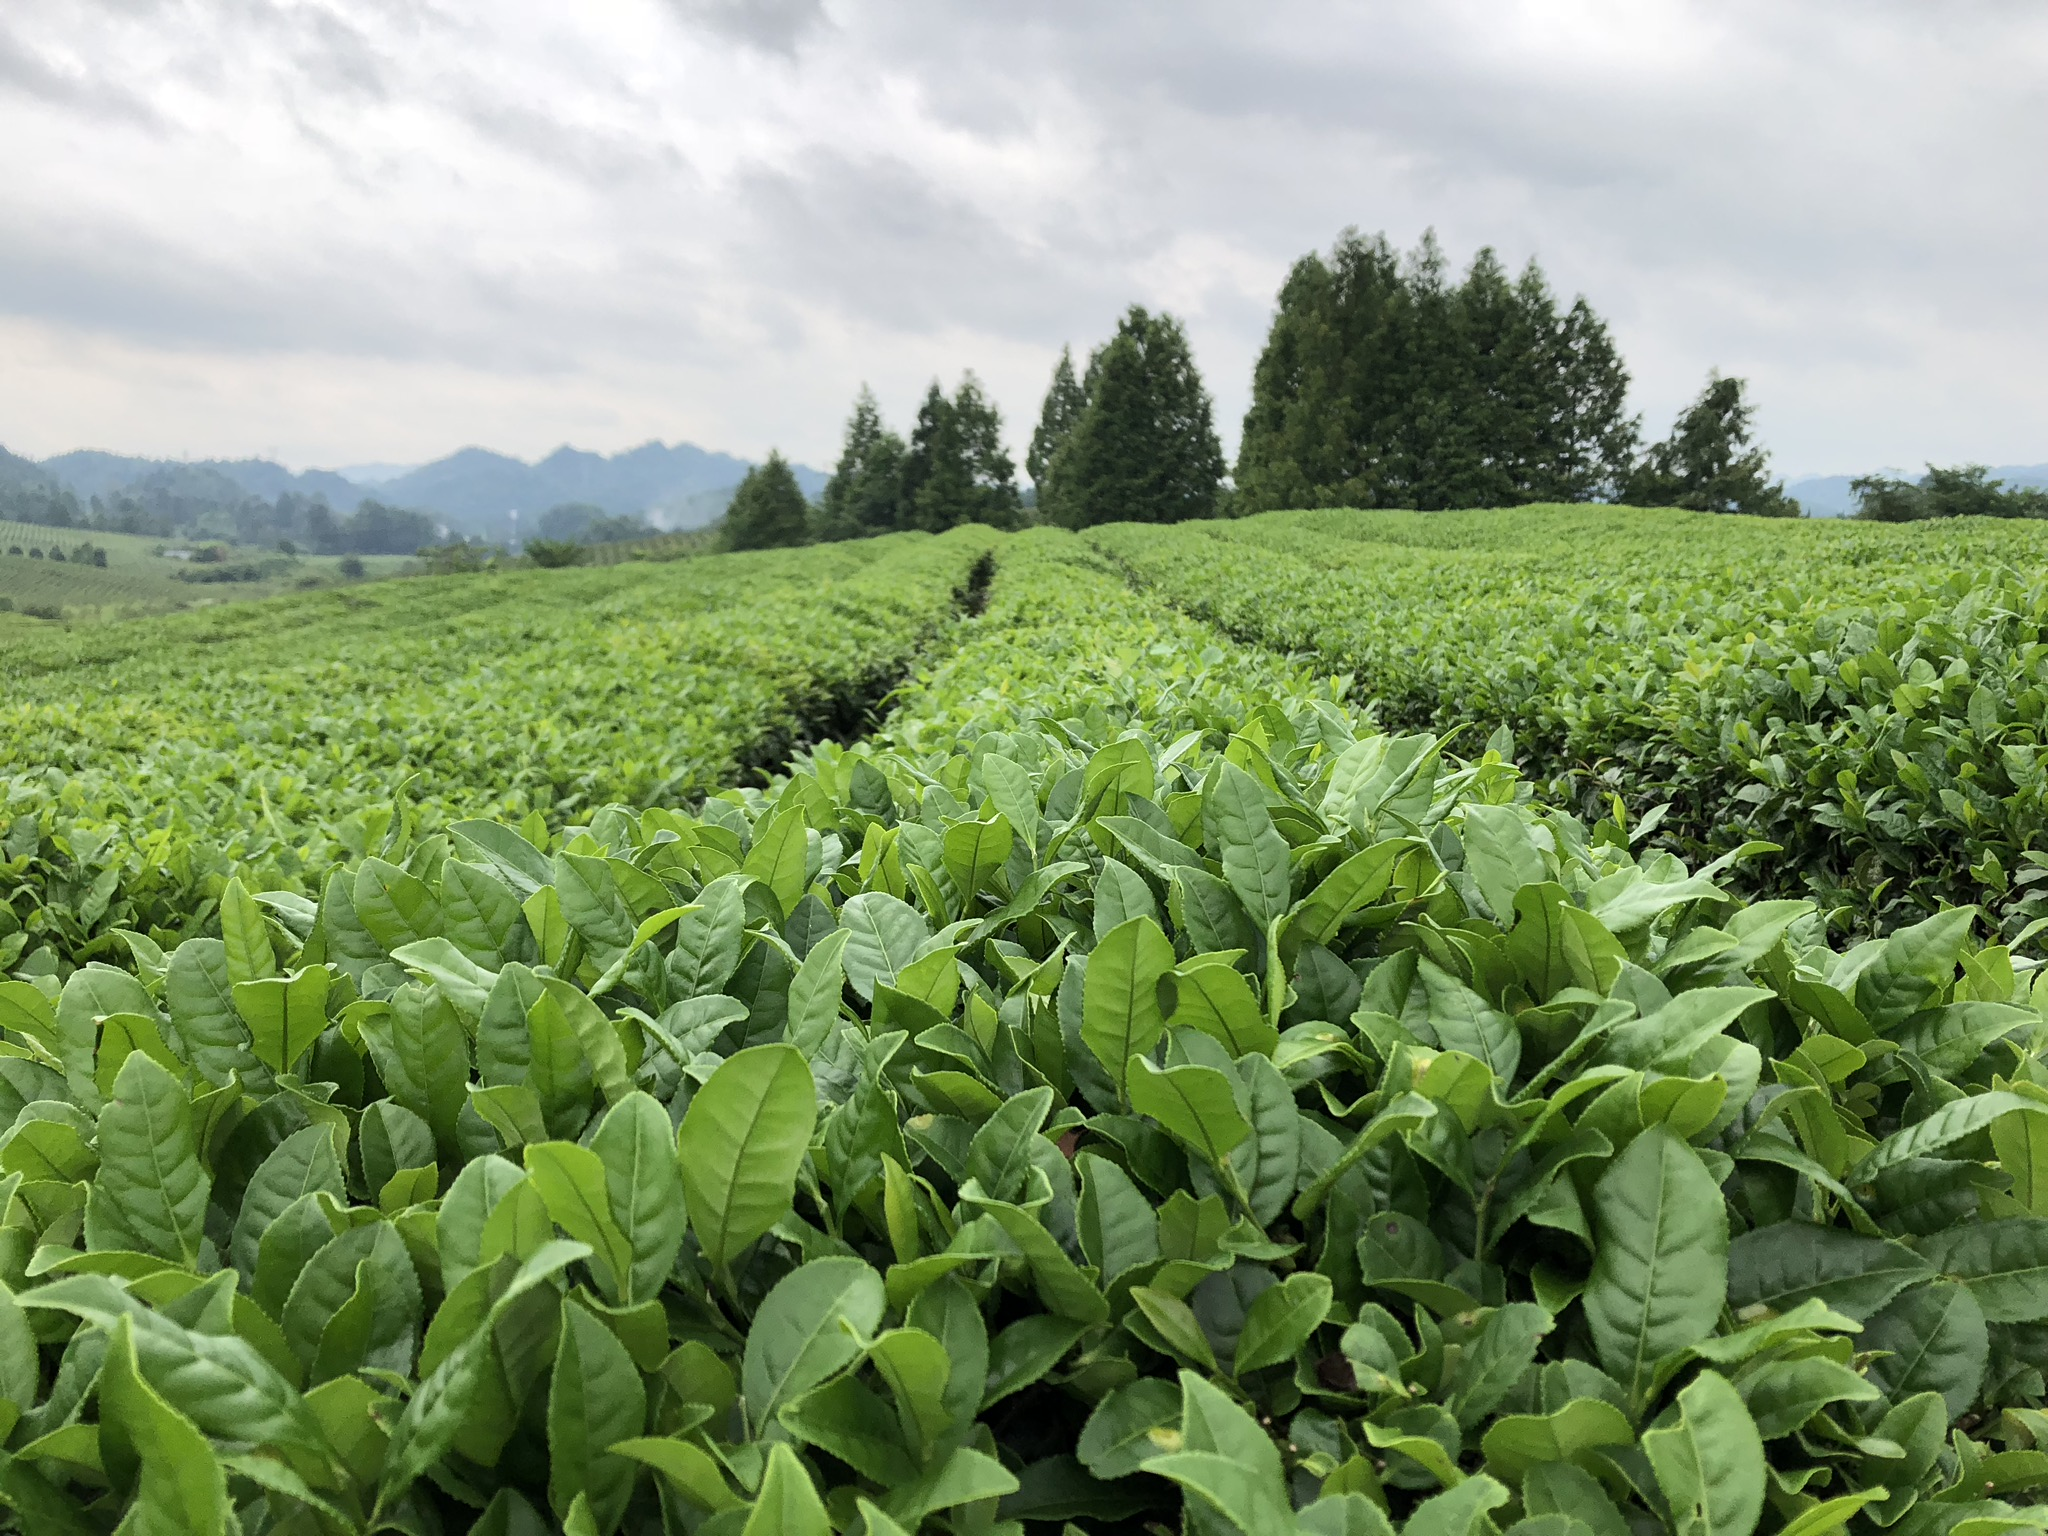 Sea of Tea - Have you ever wondered how tea is grown and cultivated? You'll find out! Bonus: The kids (and parents) get to learn about and taste different types of tea.